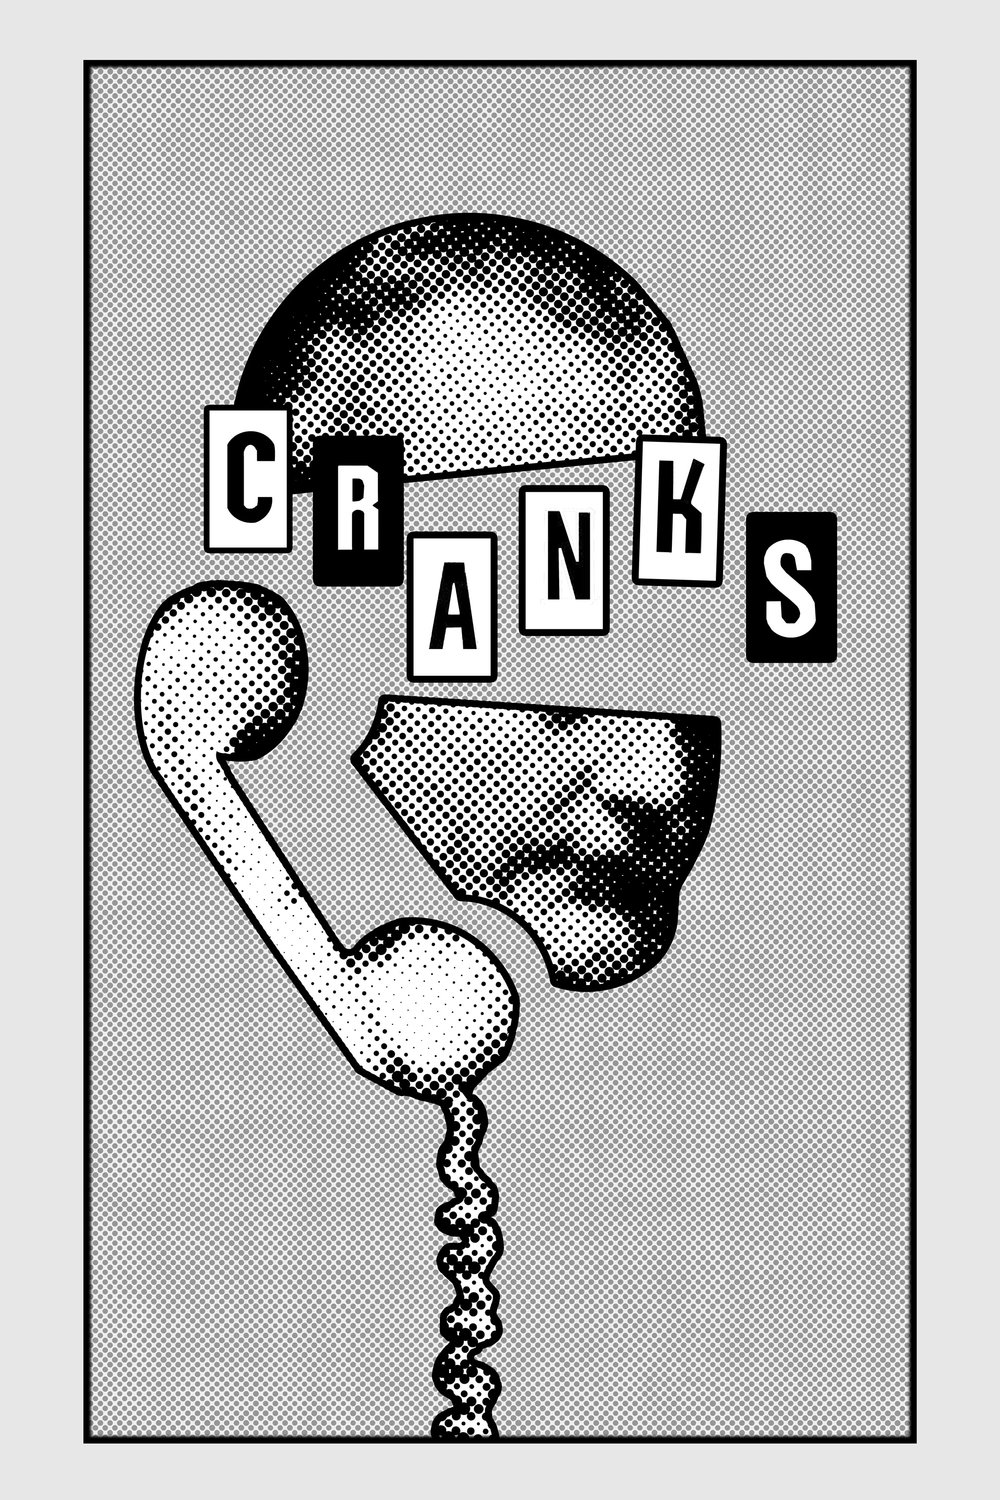 Cranks Official Poster #2